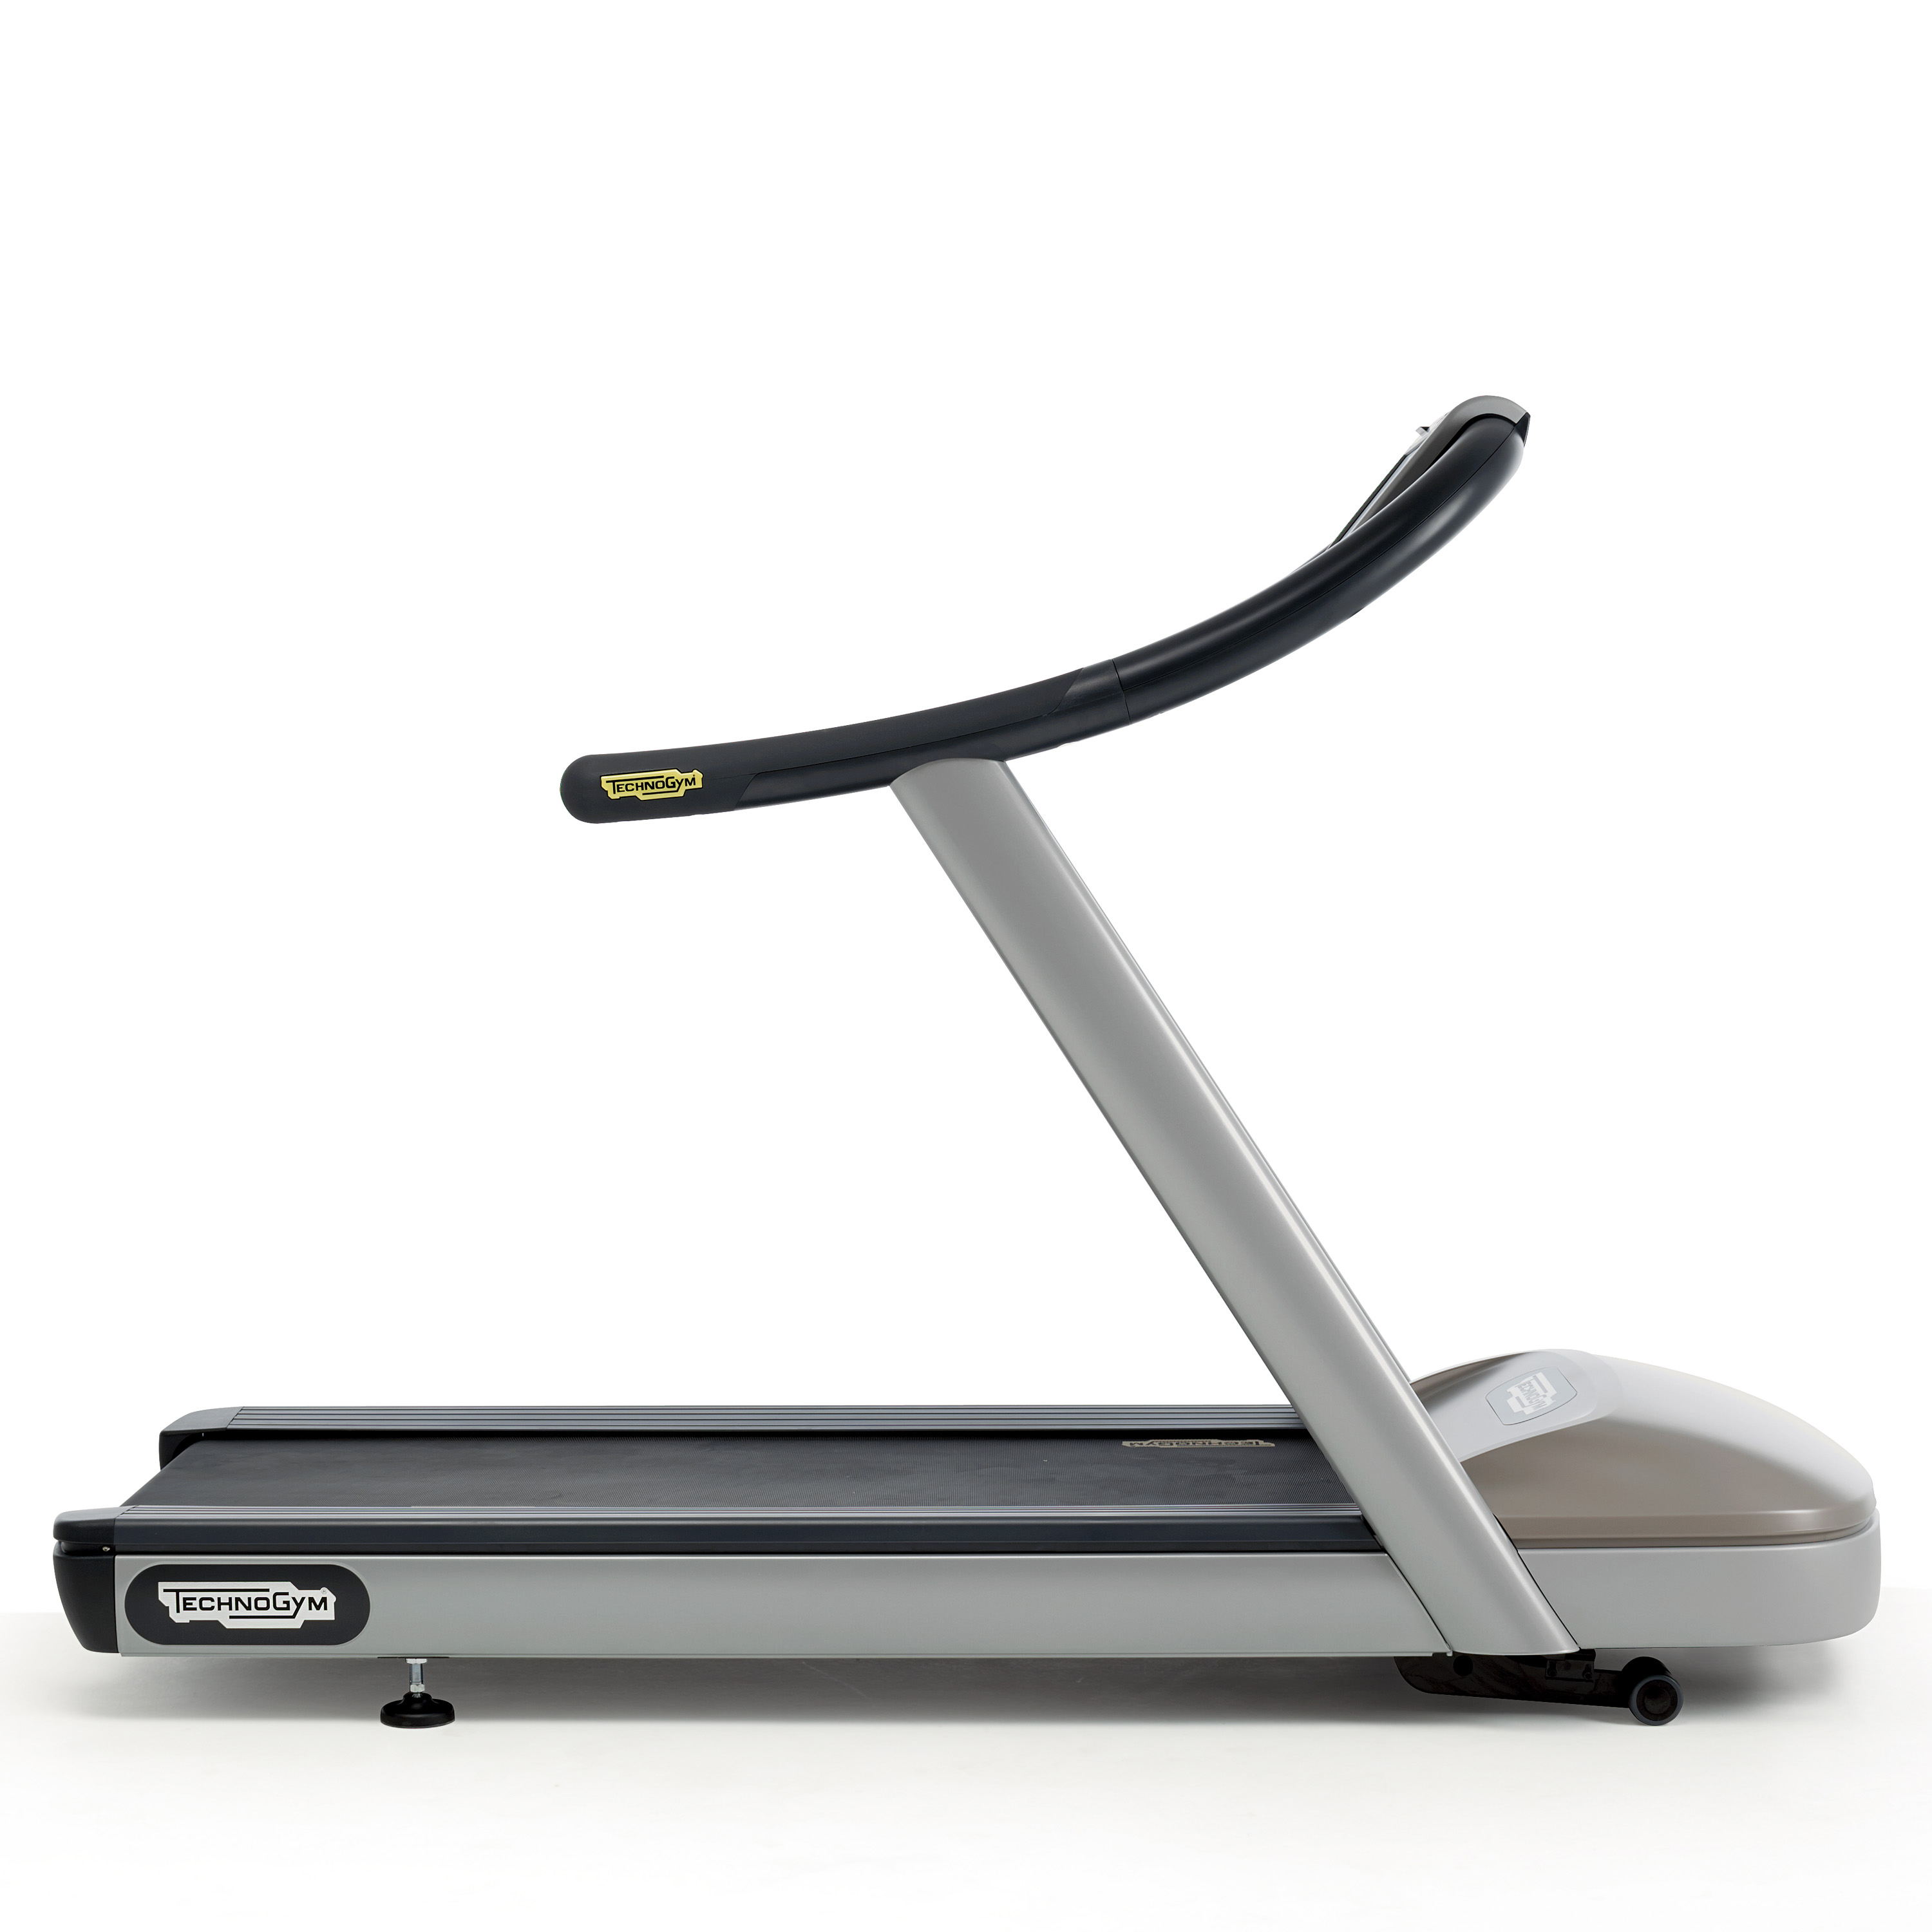 Technogym Excite+ Jog 700 Treadmill